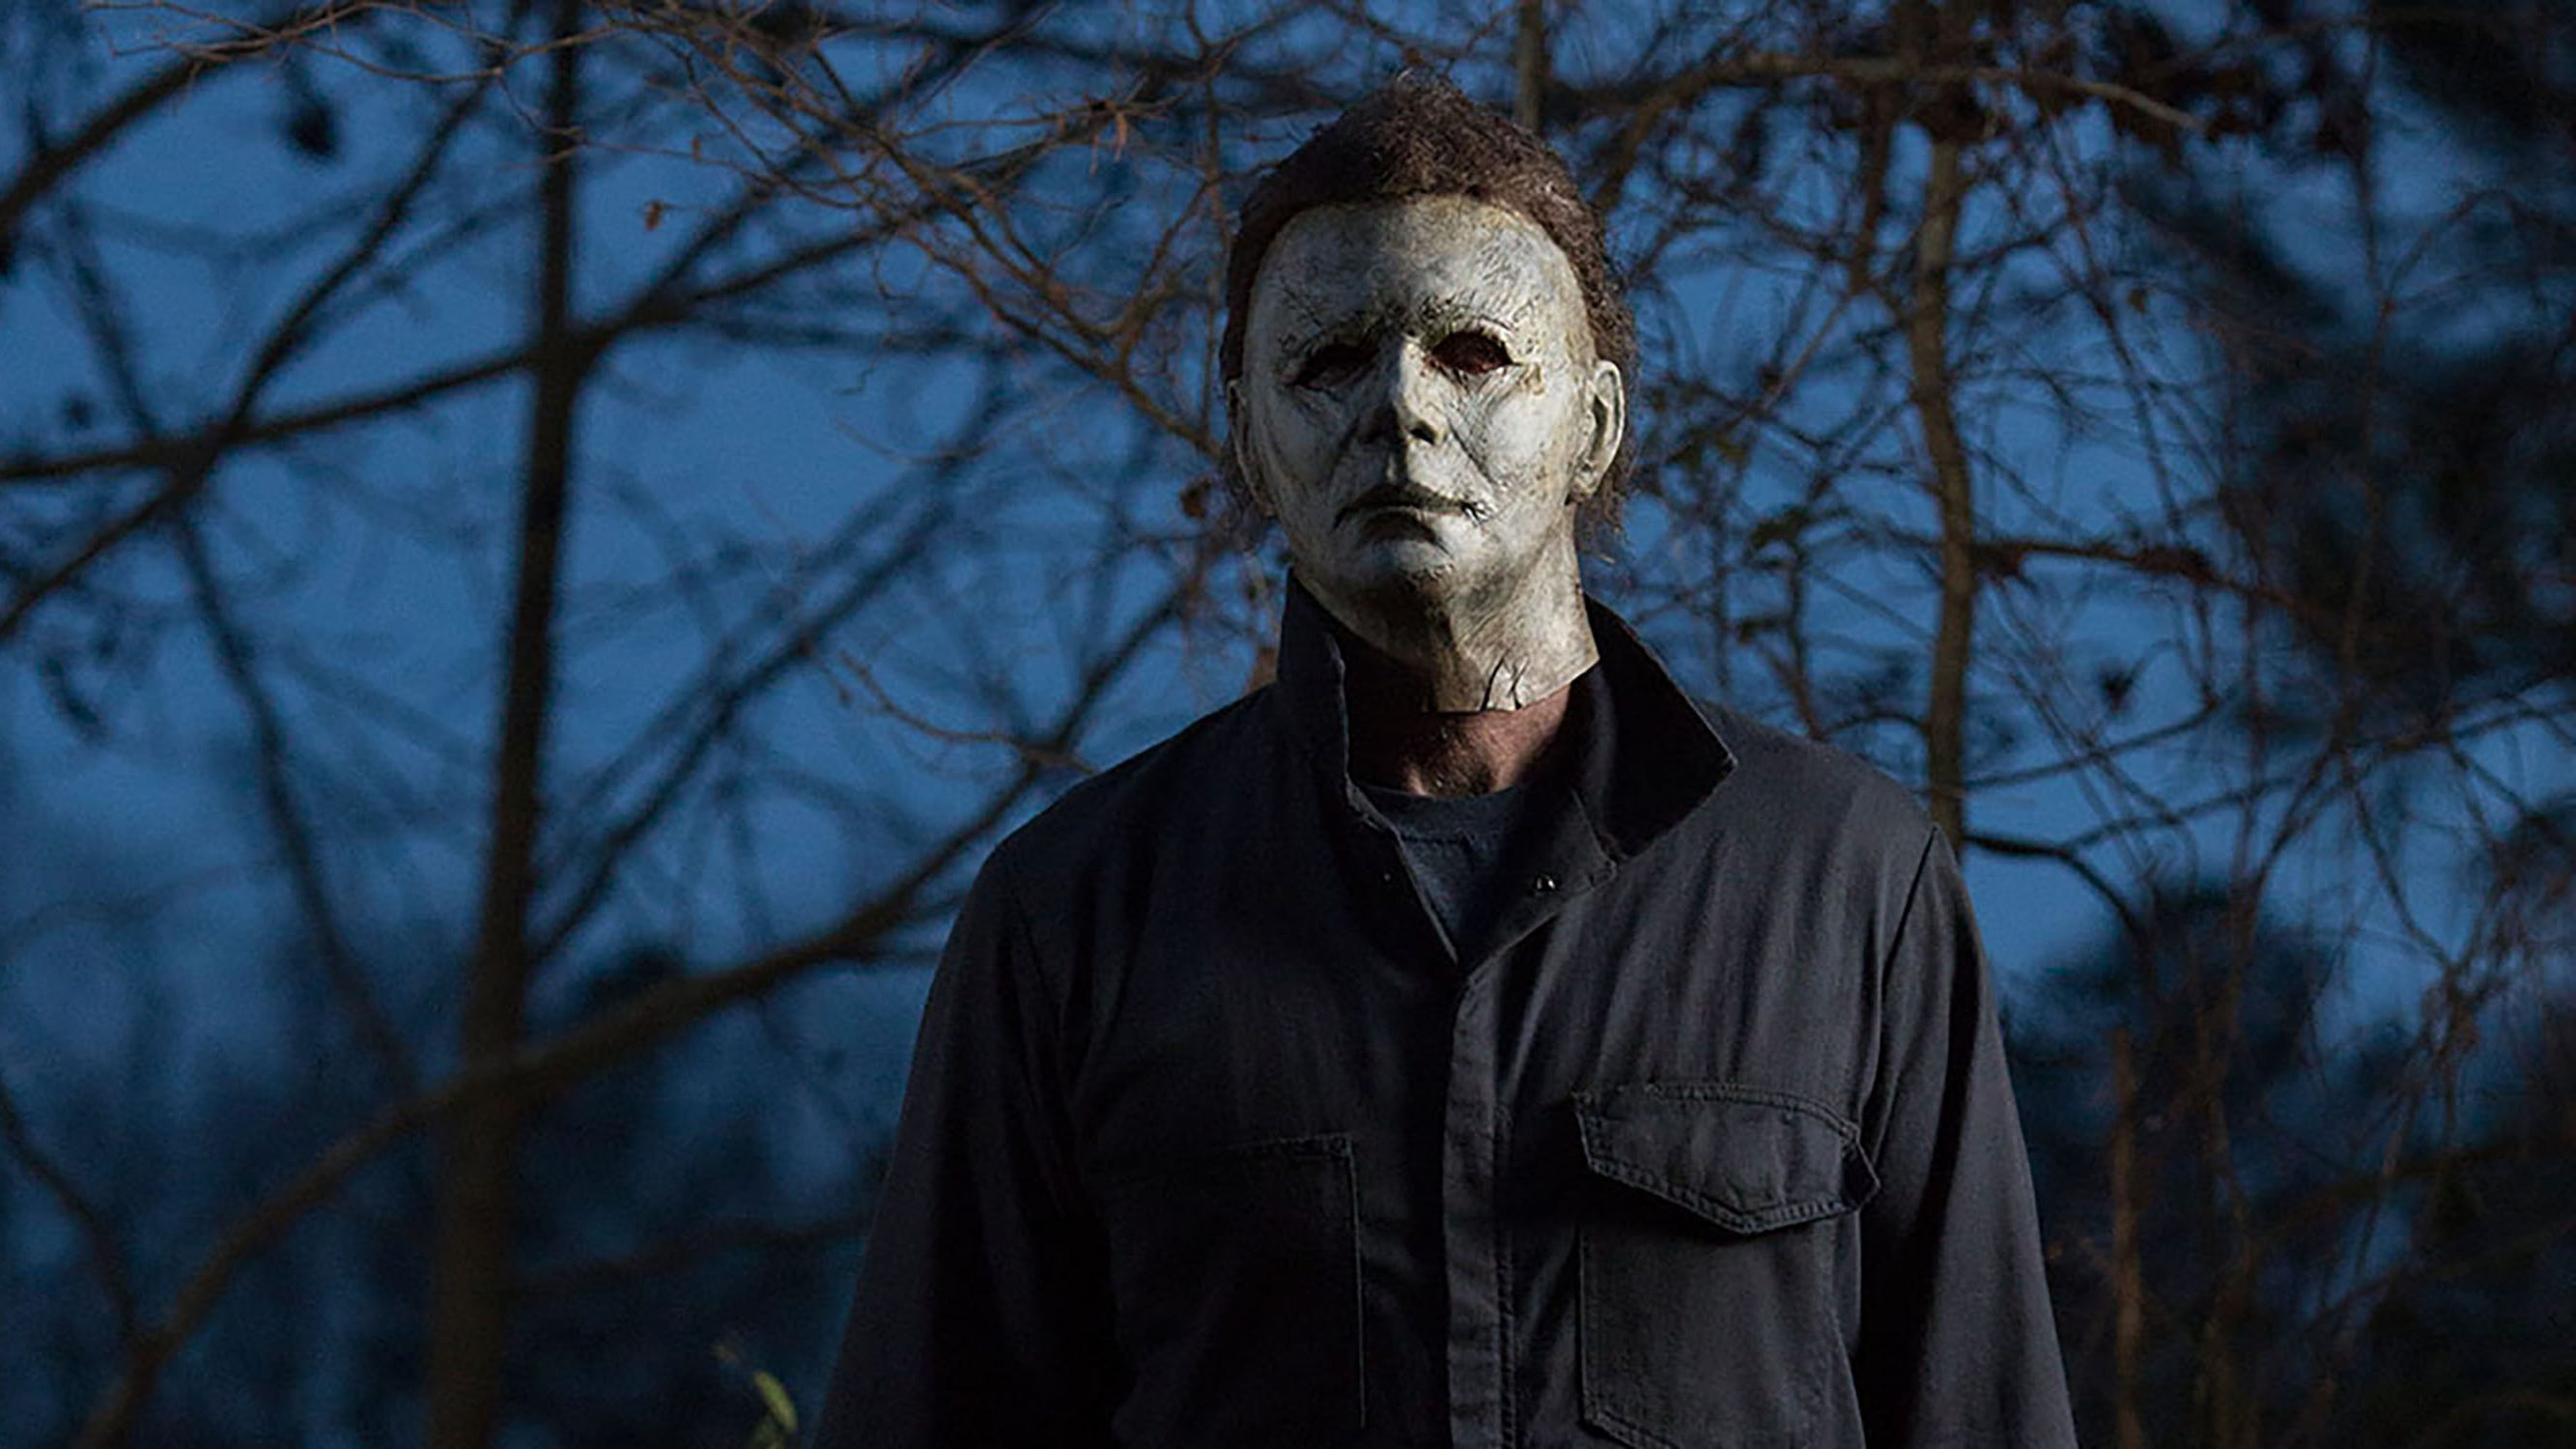 new halloween movie theme song for michael myers debuts